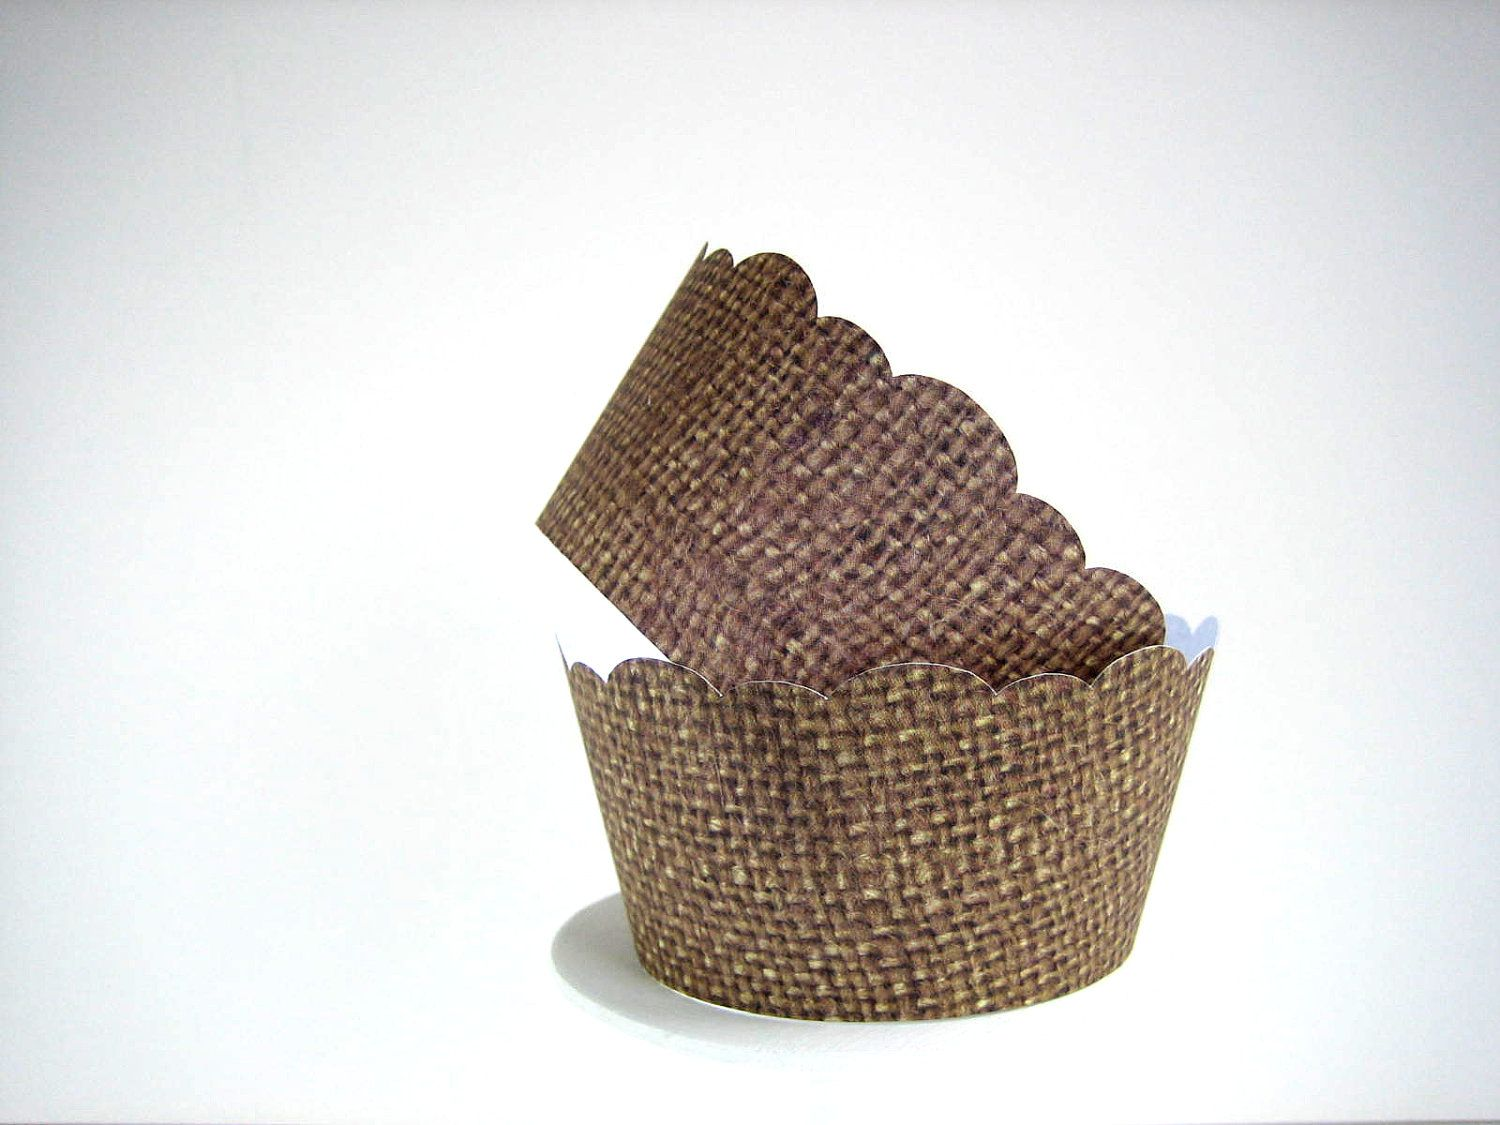 24 Burlap Cupcake Wrappers - Shabby Chic, Rustic, Fall, Autumn ...